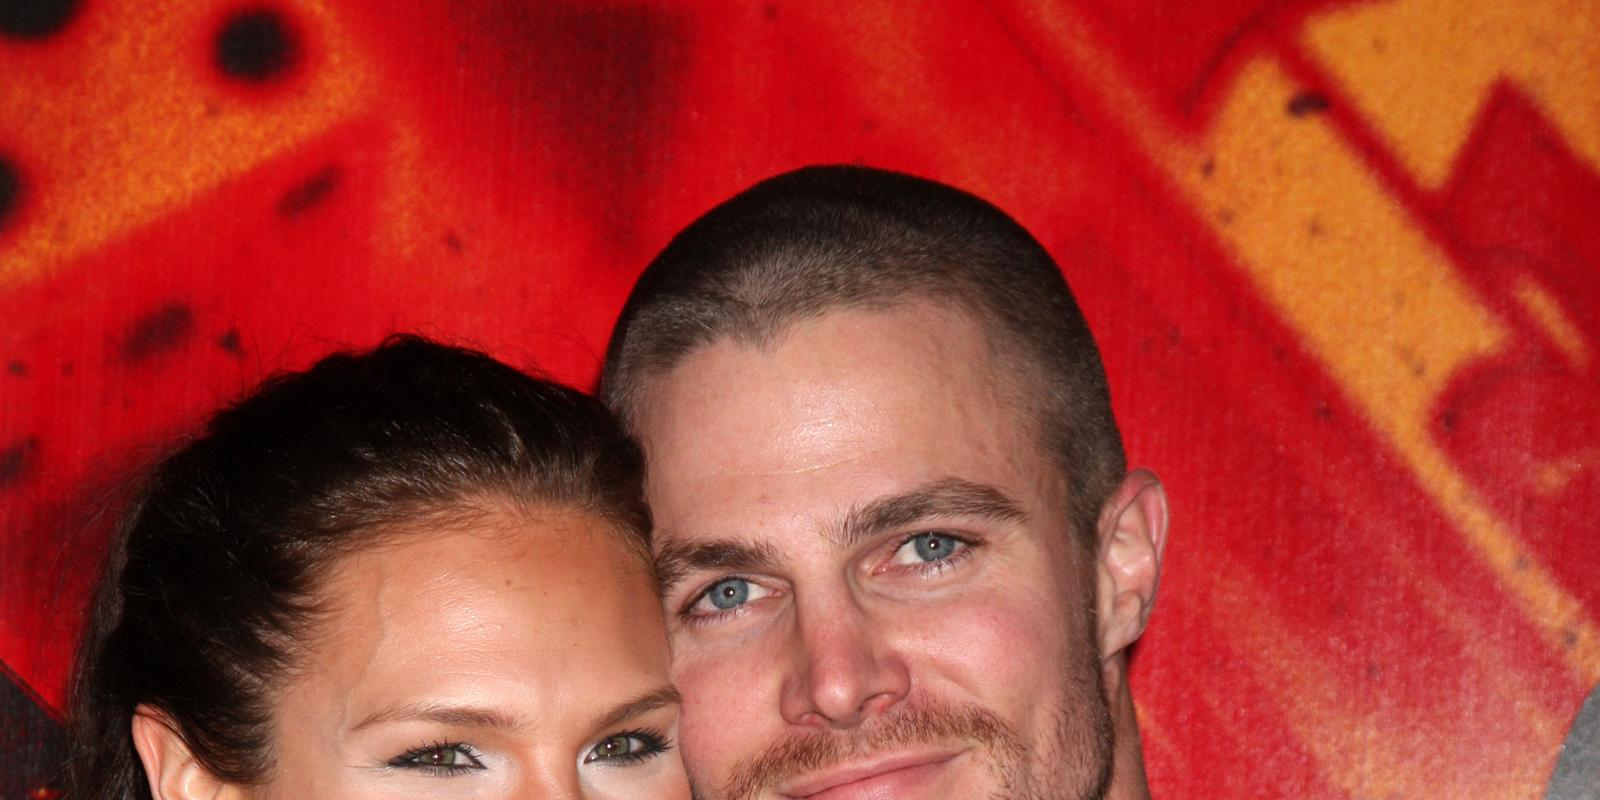 'Arrow' star Stephen Amell marries 'ANTM's Cassandra Jean